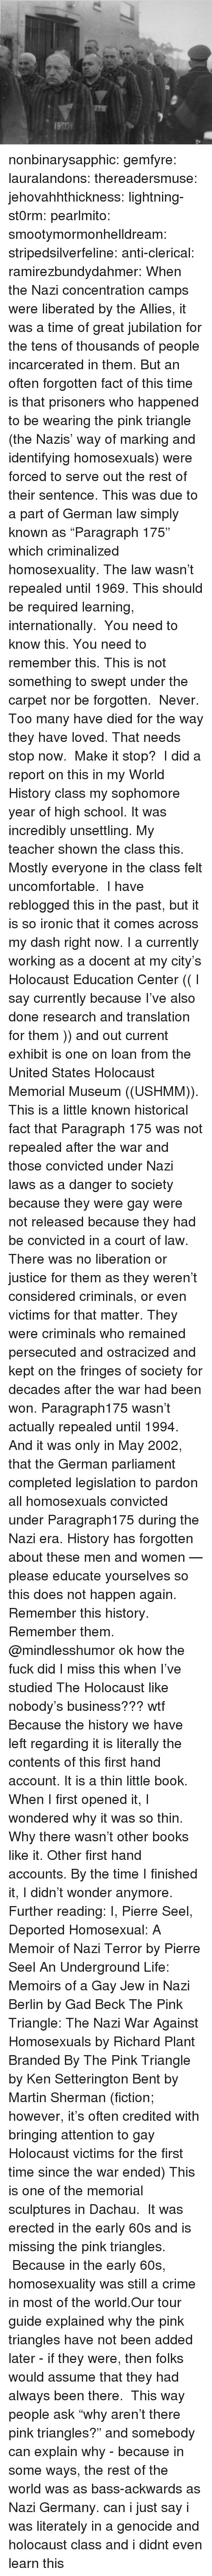 """Credited: nonbinarysapphic:  gemfyre:  lauralandons:  thereadersmuse:  jehovahhthickness:  lightning-st0rm:  pearlmito:  smootymormonhelldream:  stripedsilverfeline:  anti-clerical:  ramirezbundydahmer:  When the Nazi concentration camps were liberated by the Allies, it was a time of great jubilation for the tens of thousands of people incarcerated in them. But an often forgotten fact of this time is that prisoners who happened to be wearing the pink triangle (the Nazis' way of marking and identifying homosexuals) were forced to serve out the rest of their sentence. This was due to a part of German law simply known as """"Paragraph 175"""" which criminalized homosexuality. The law wasn't repealed until 1969.  This should be required learning, internationally.  You need to know this. You need to remember this. This is not something to swept under the carpet nor be forgotten. Never. Too many have died for the way they have loved. That needs stop now. Make it stop?  I did a report on this in my World History class my sophomore year of high school. It was incredibly unsettling.  My teacher shown the class this. Mostly everyone in the class felt uncomfortable.  I have reblogged this in the past, but it is so ironic that it comes across my dash right now. I a currently working as a docent at my city's Holocaust Education Center (( I say currently because I've also done research and translation for them )) and out current exhibit is one on loan from the United States Holocaust Memorial Museum ((USHMM)). This is a little known historical fact that Paragraph 175 was not repealed after the war and those convicted under Nazi laws as a danger to society because they were gay were not released because they had be convicted in a court of law. There was no liberation or justice for them as they weren't considered criminals, or even victims for that matter. They were criminals who remained persecuted and ostracized and kept on the fringes of society for decades after the war had been won"""